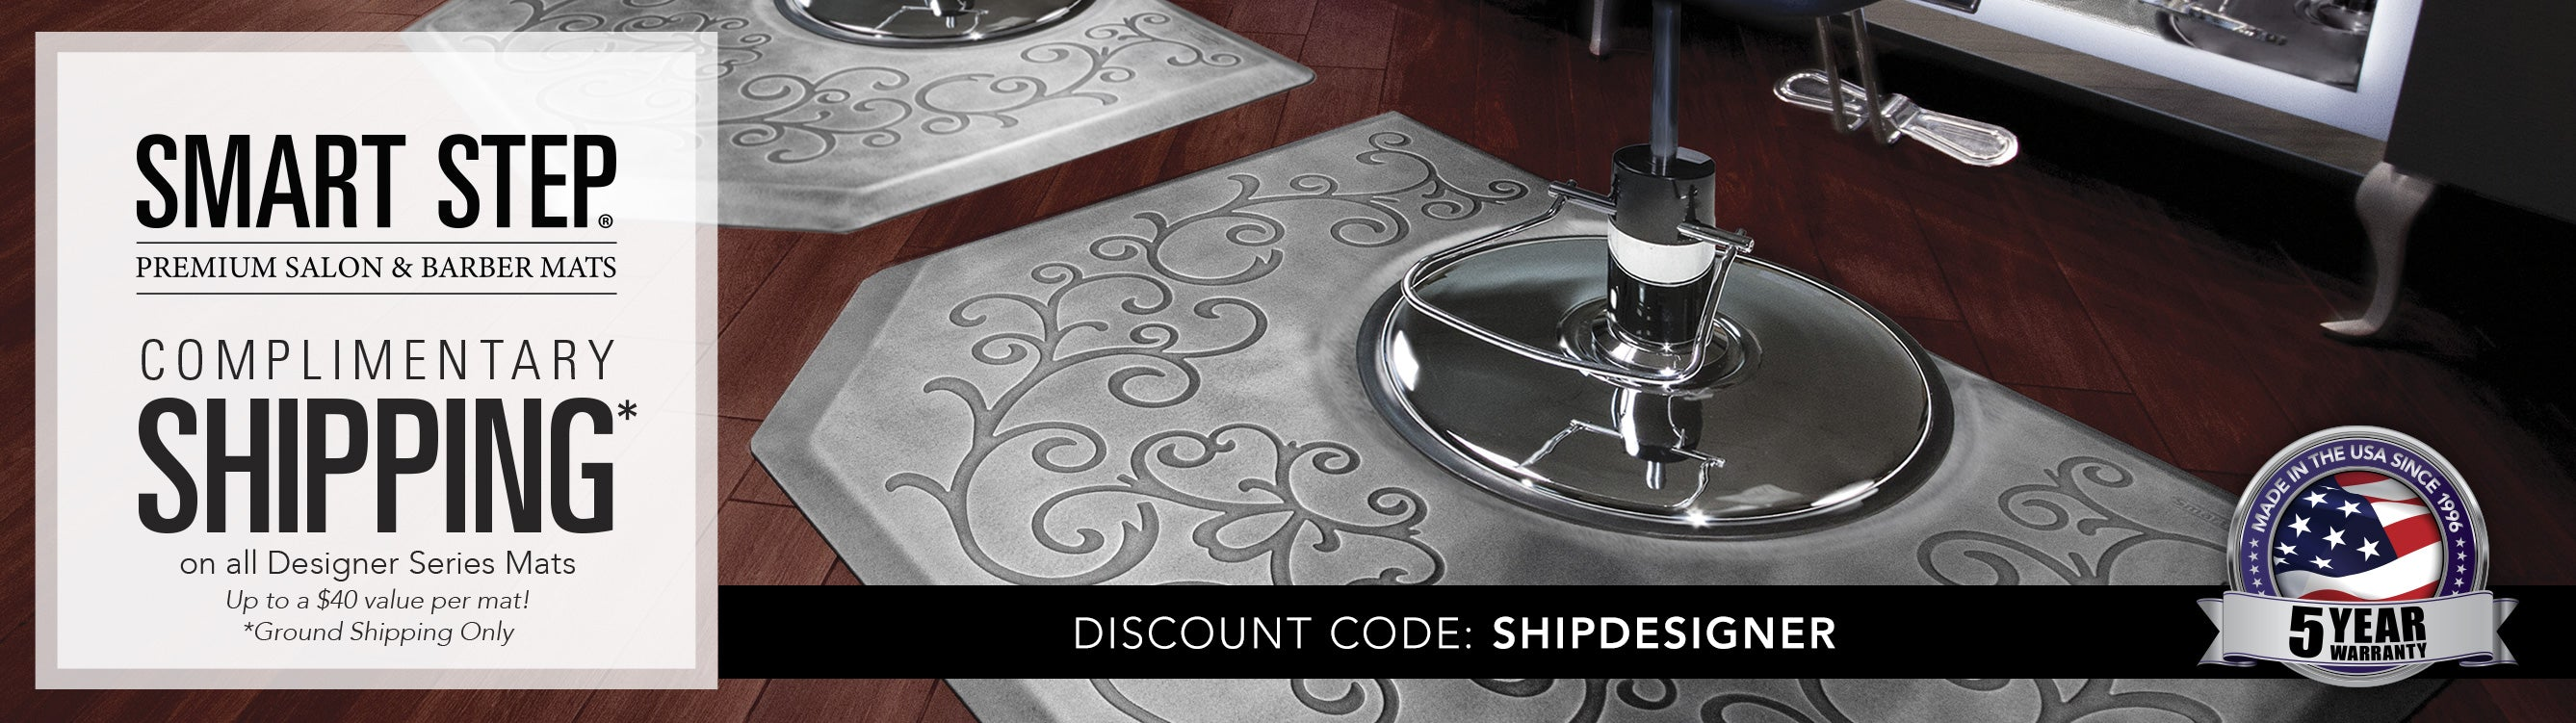 Complimentary ground shipping on all Designer Series Mats with code SHIPDESIGNER